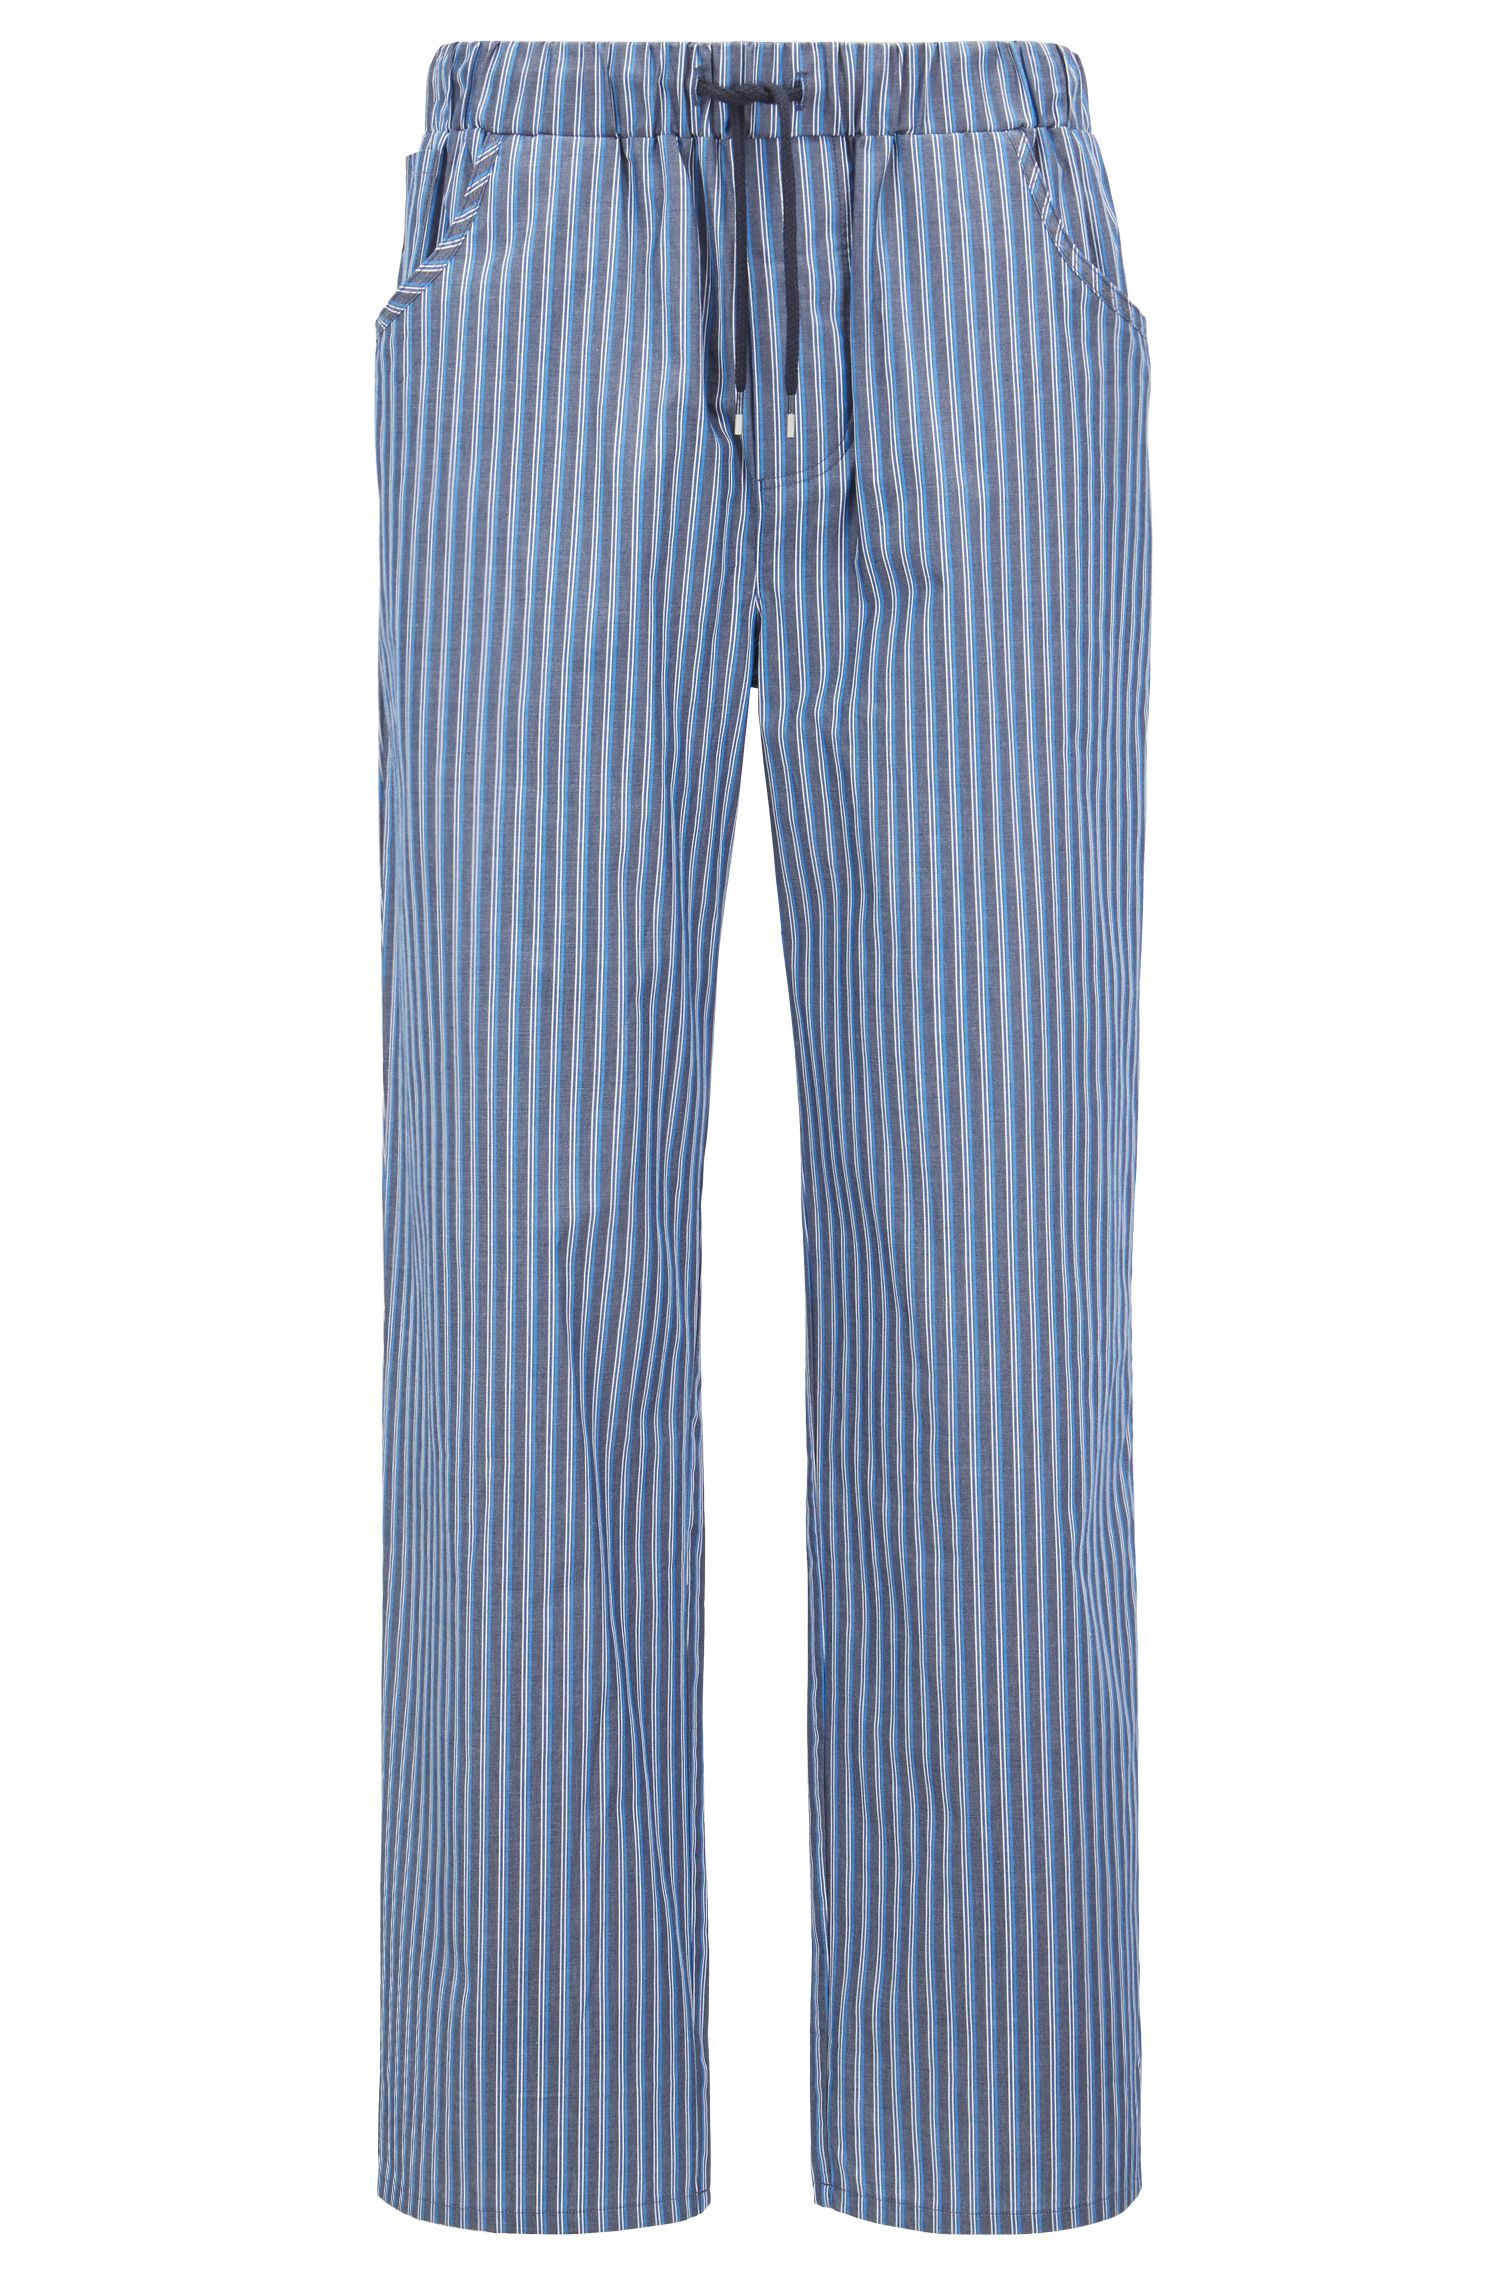 Pyjama trousers in striped cotton twill with pockets, Dark Blue